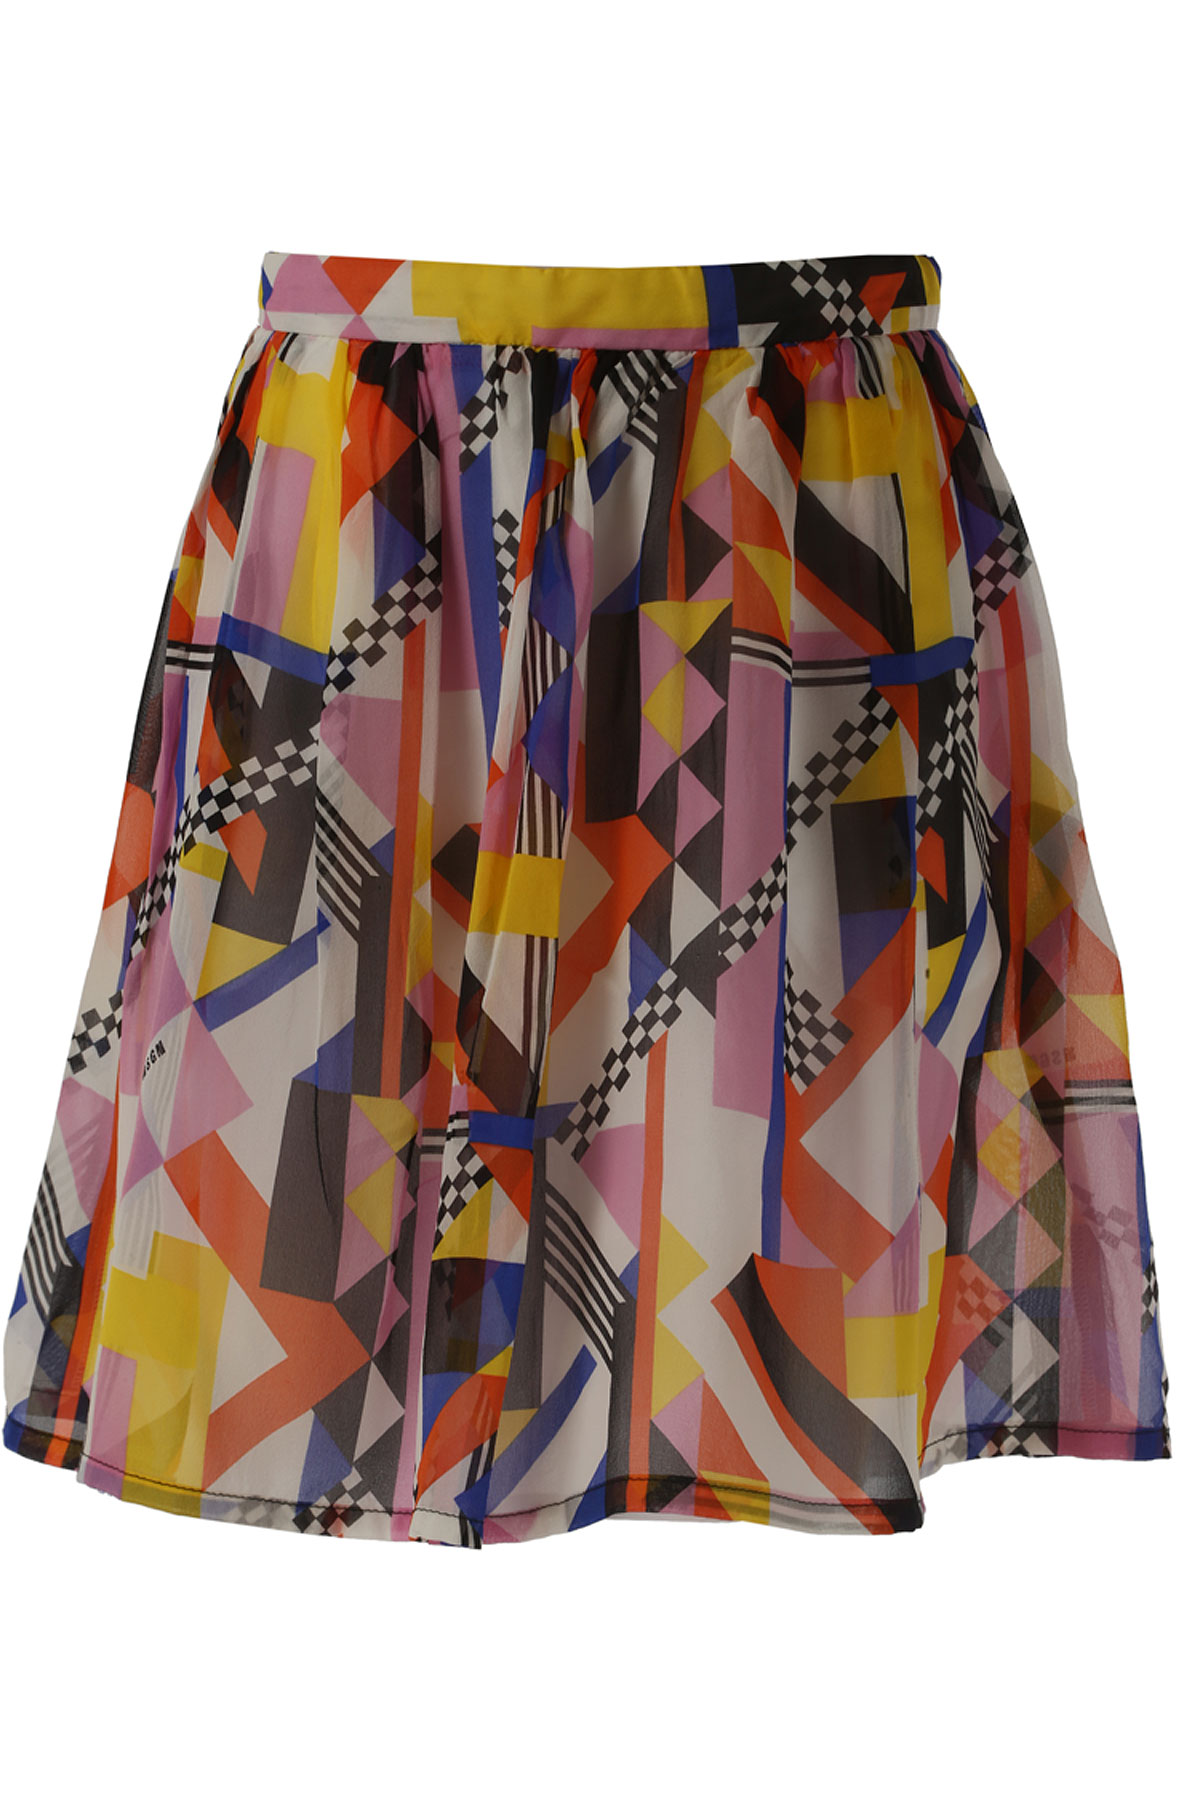 MSGM Kids Skirts for Girls On Sale in Outlet, Multicolor, Silk, 2017, 14Y 6Y